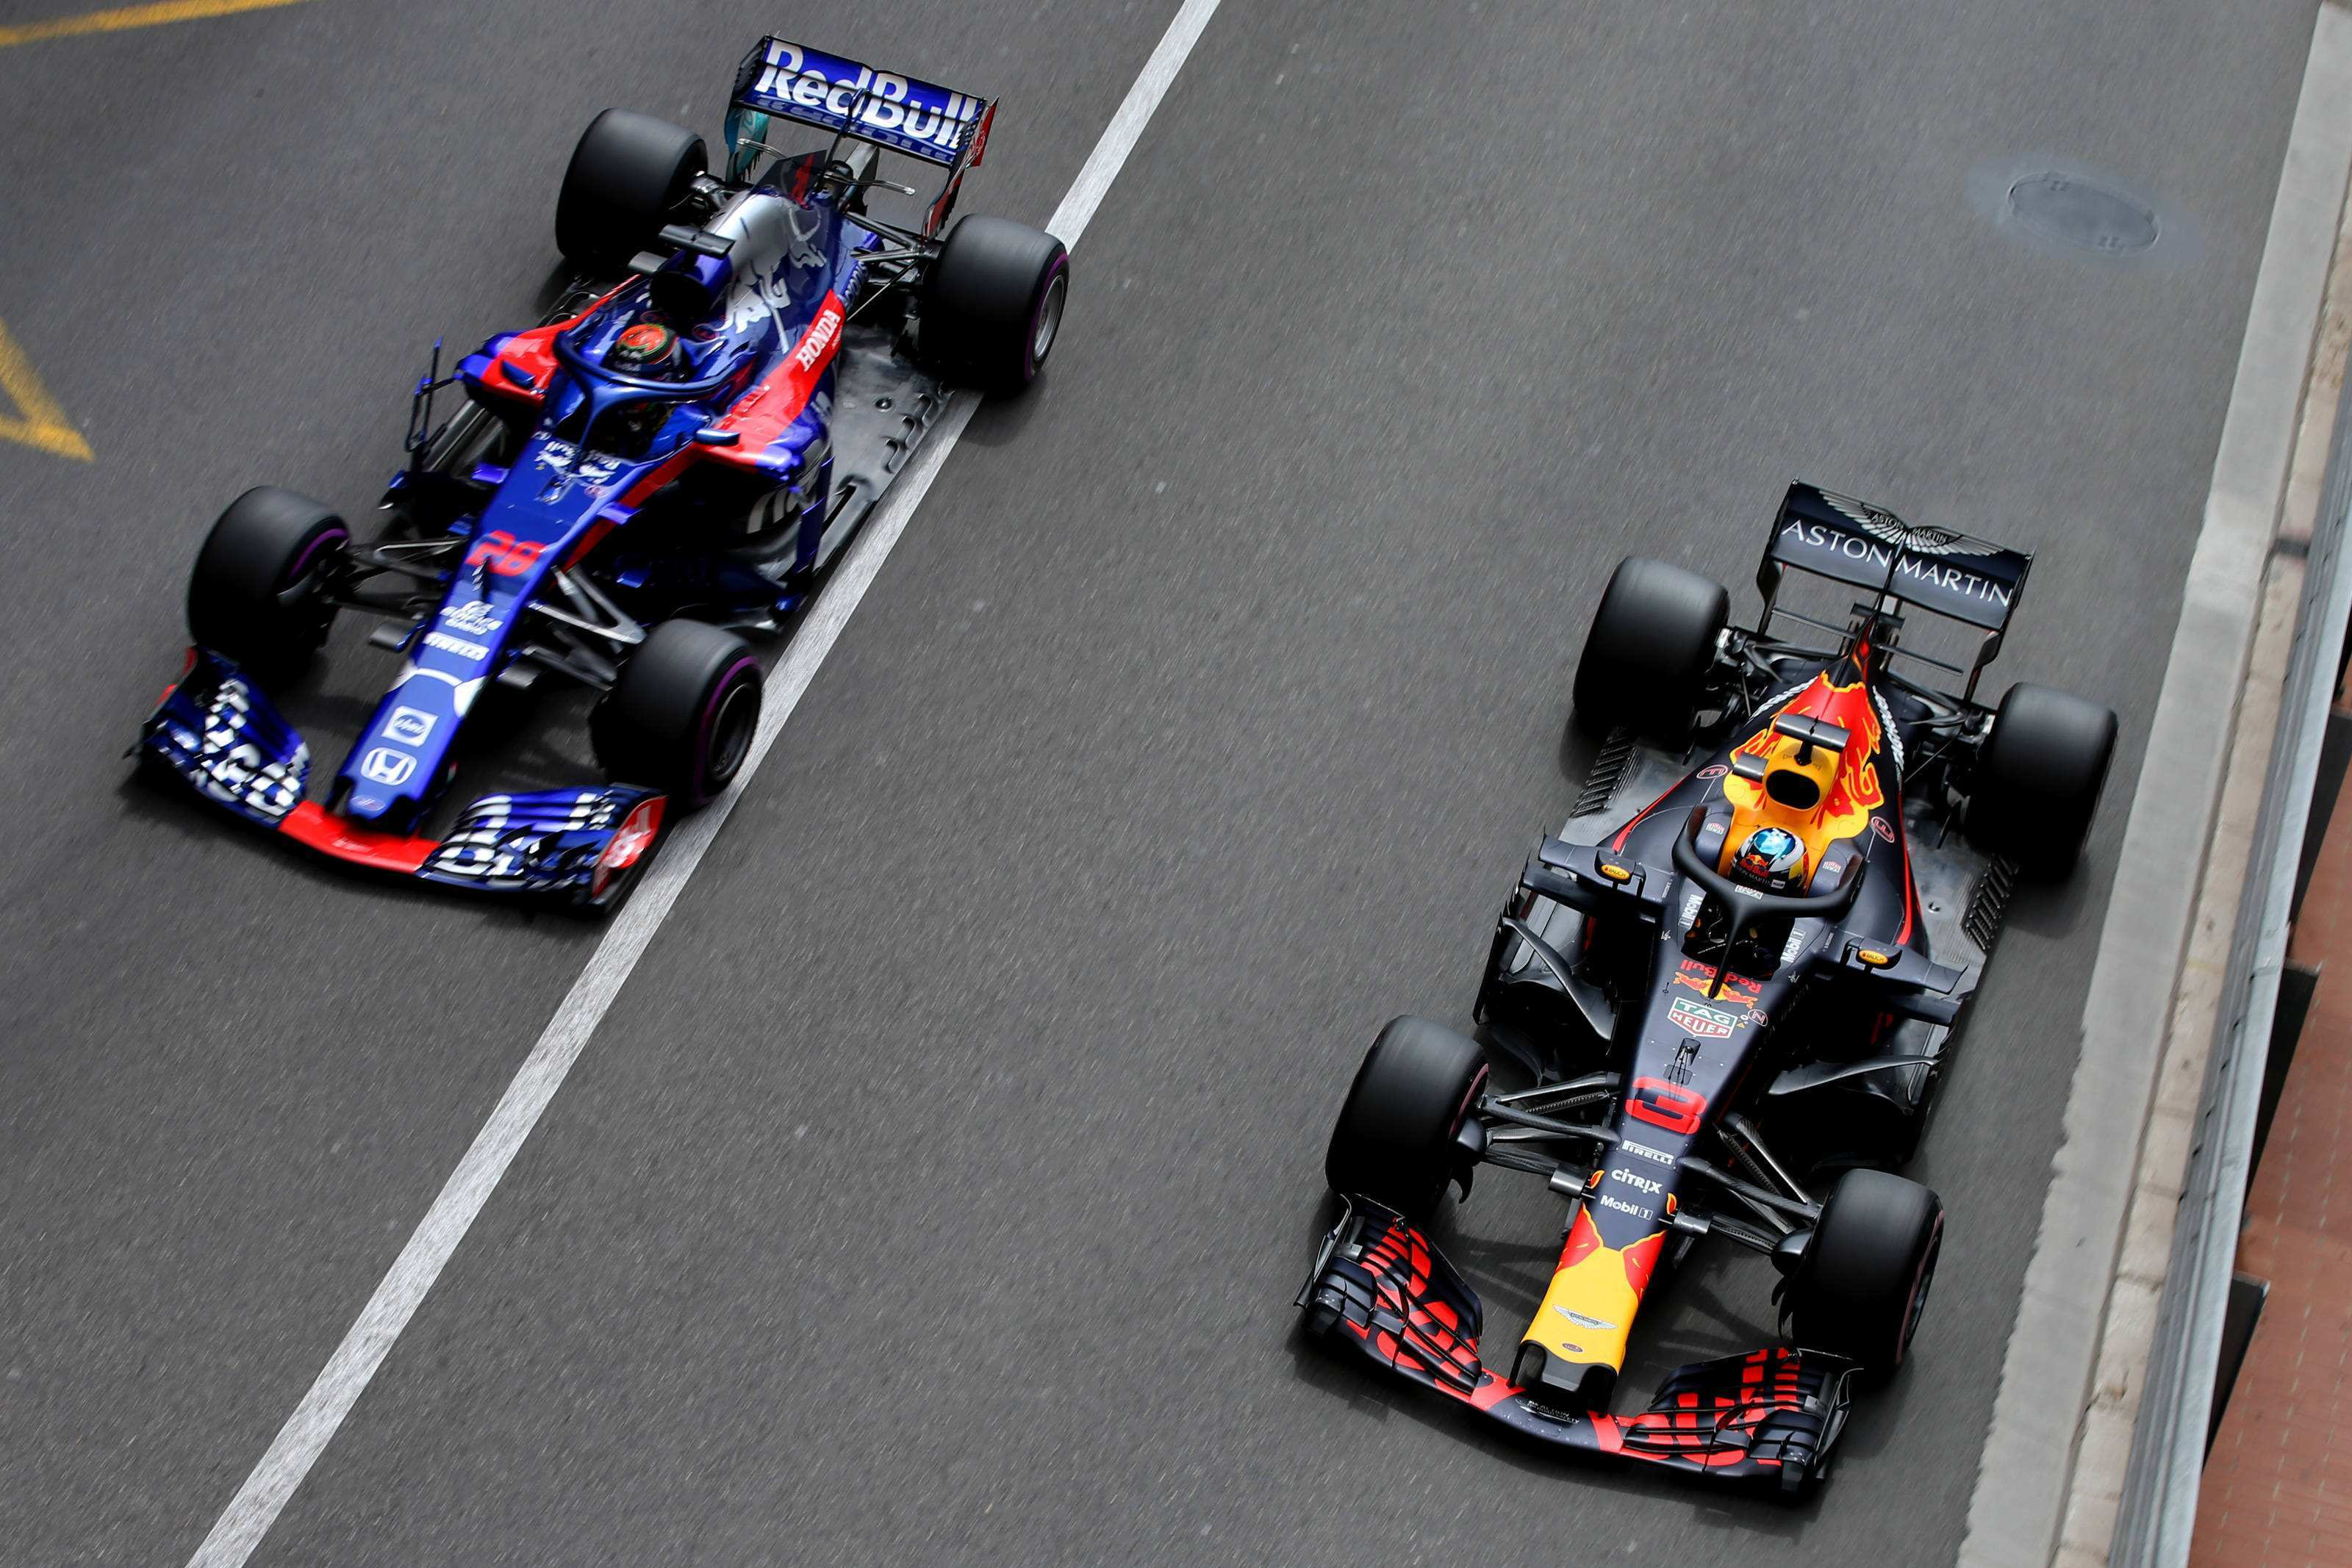 68 Great 2019 Aston Martin Red Bull Prices by 2019 Aston Martin Red Bull